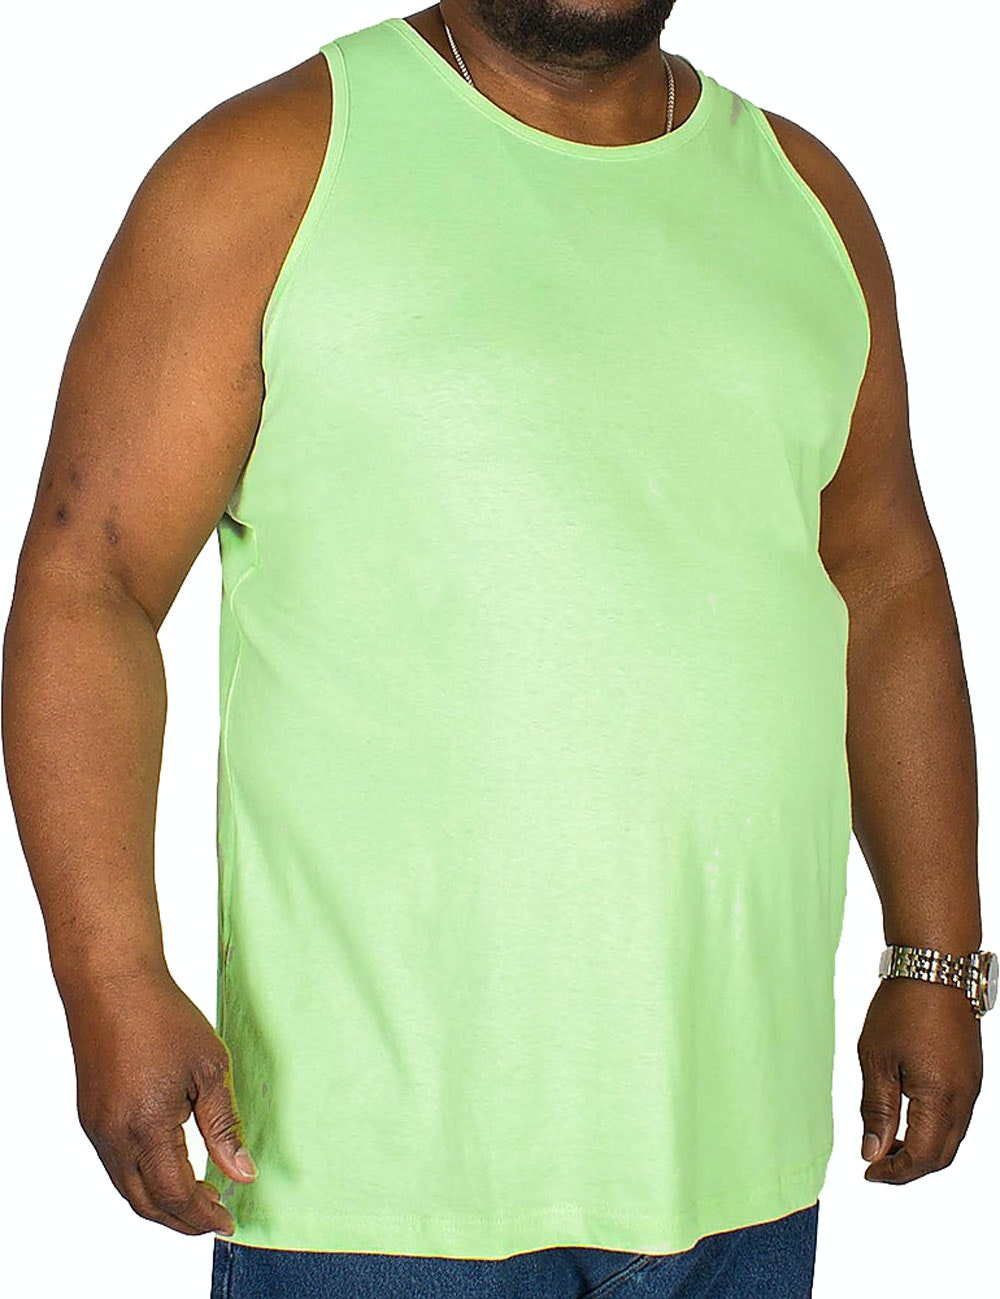 Bigdude Plain Vest Green